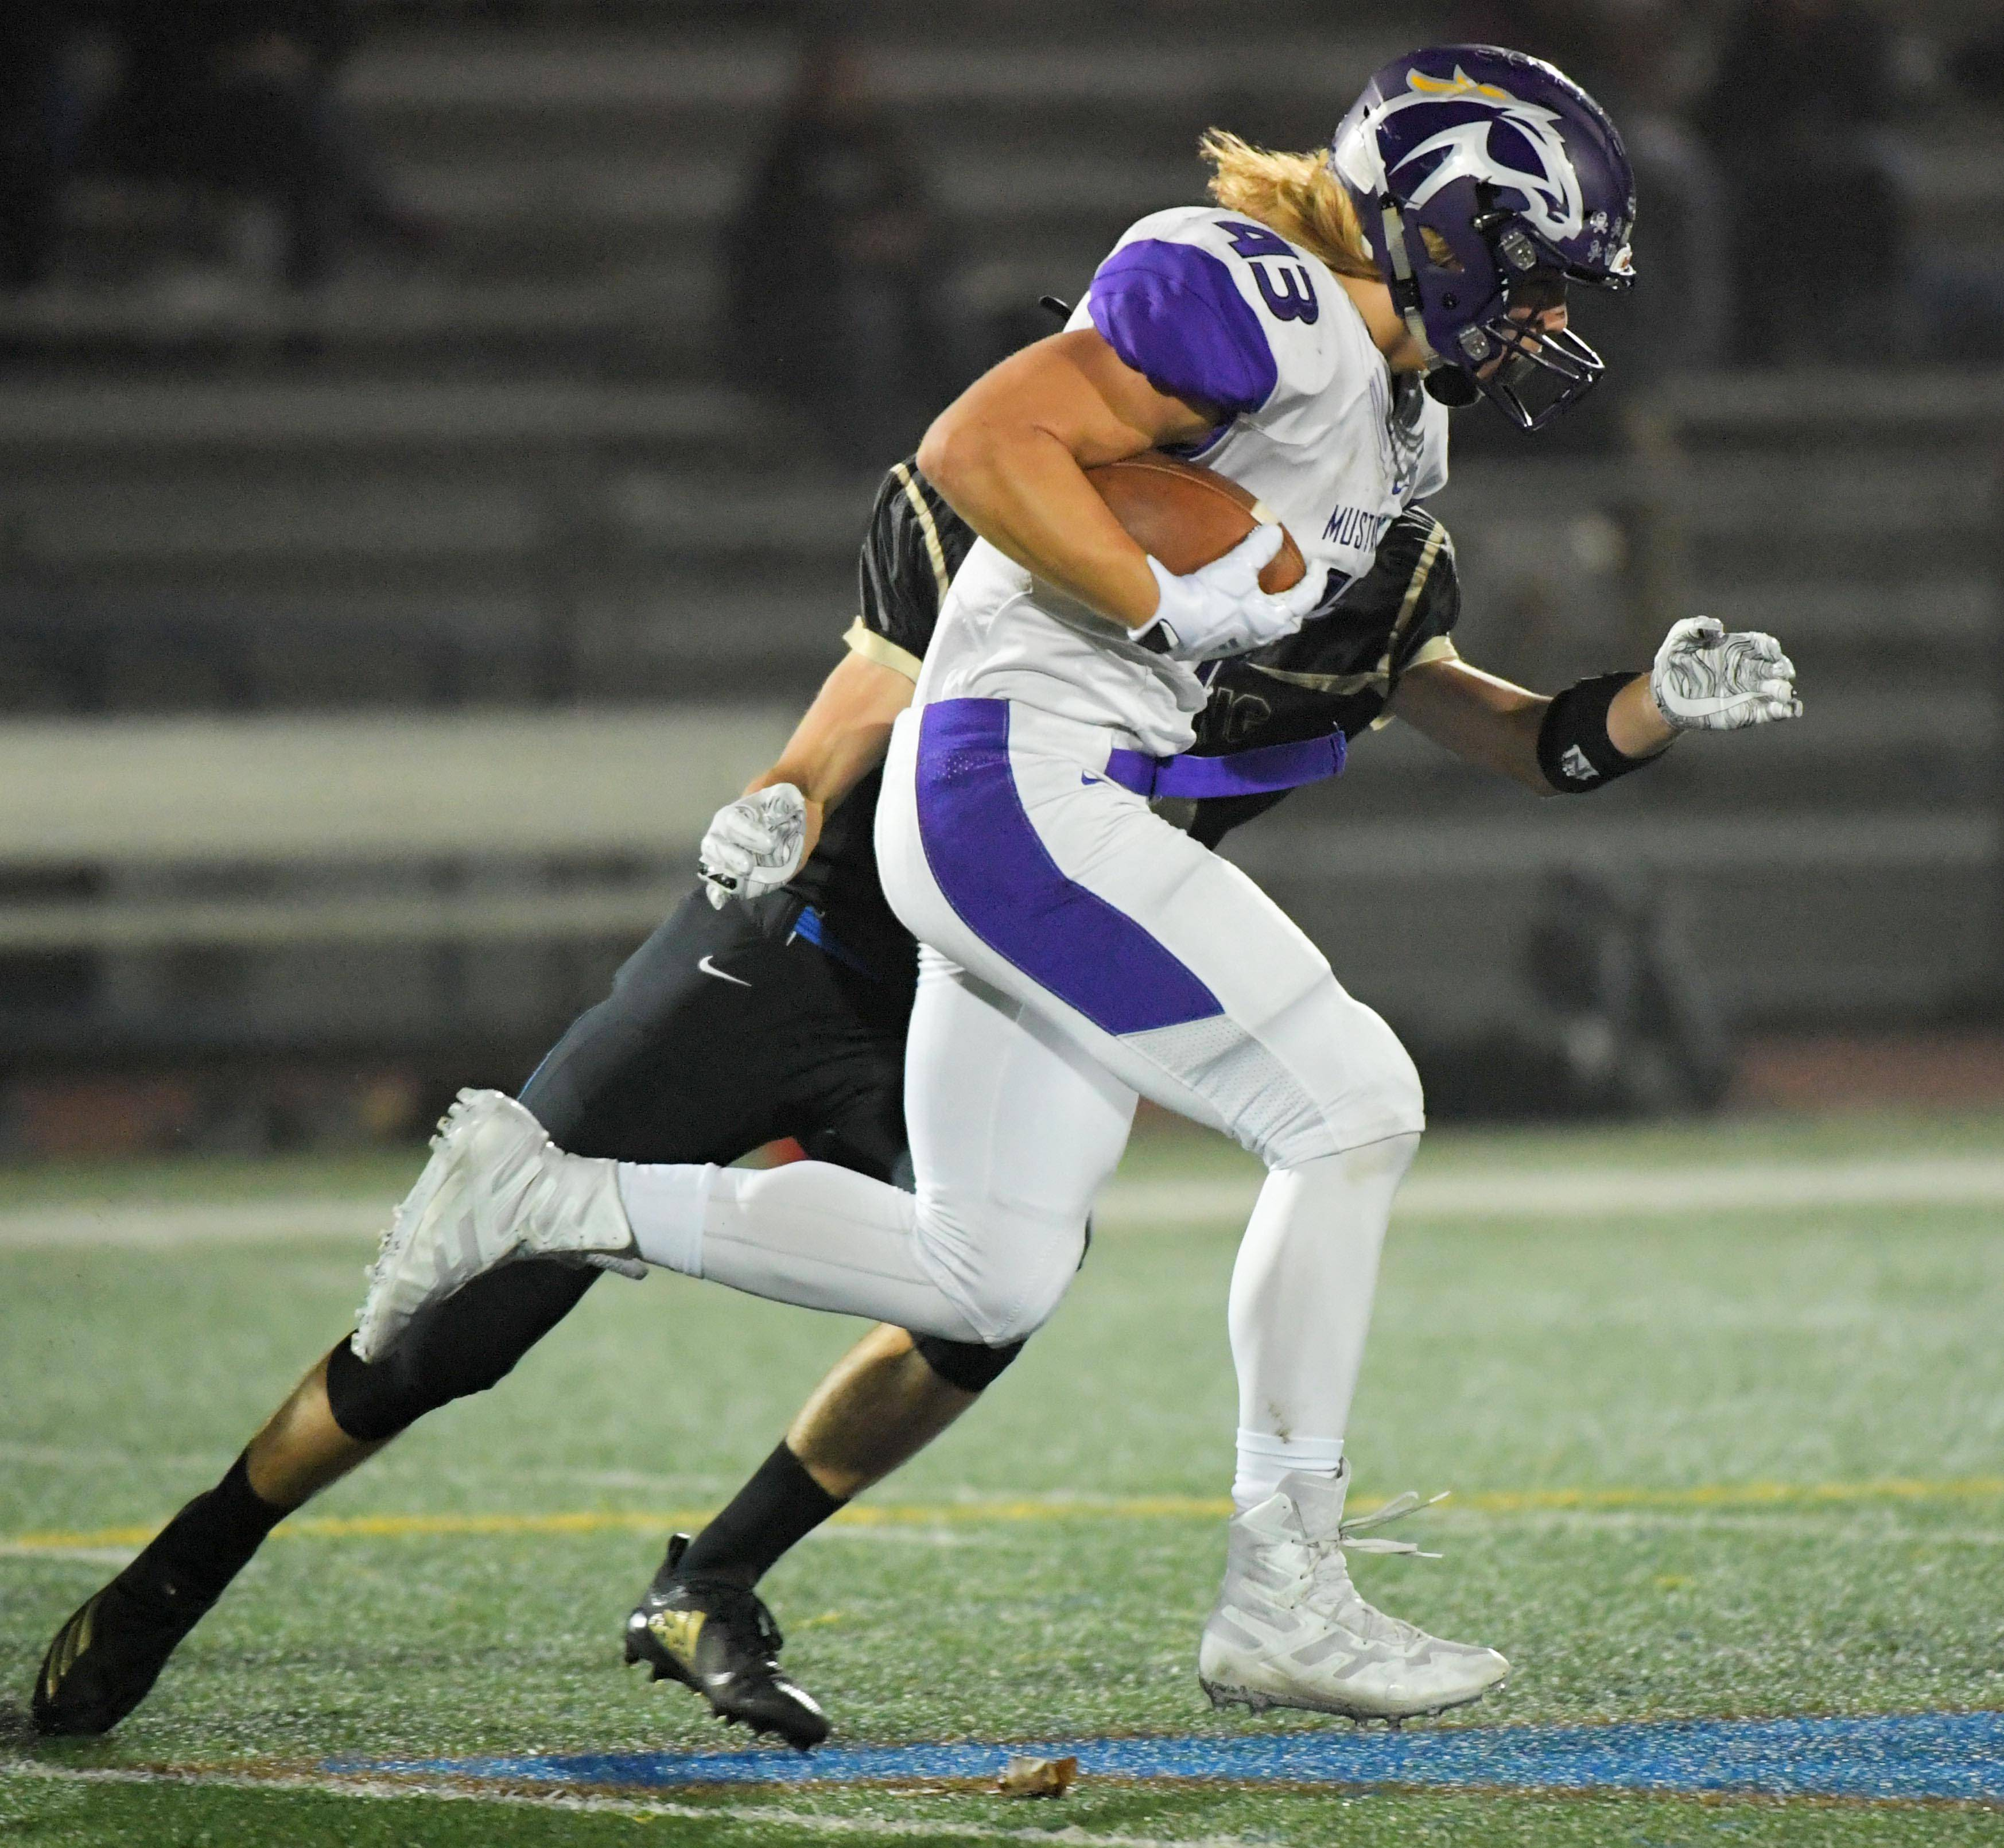 Rolling Meadows' Tim Szylak gets past Wheeling's Danny Provost earlier this season. Szylak, the Northwest suburbs' leading rusher, and the Mustangs will host Hersey in an MSL East showdown Friday.